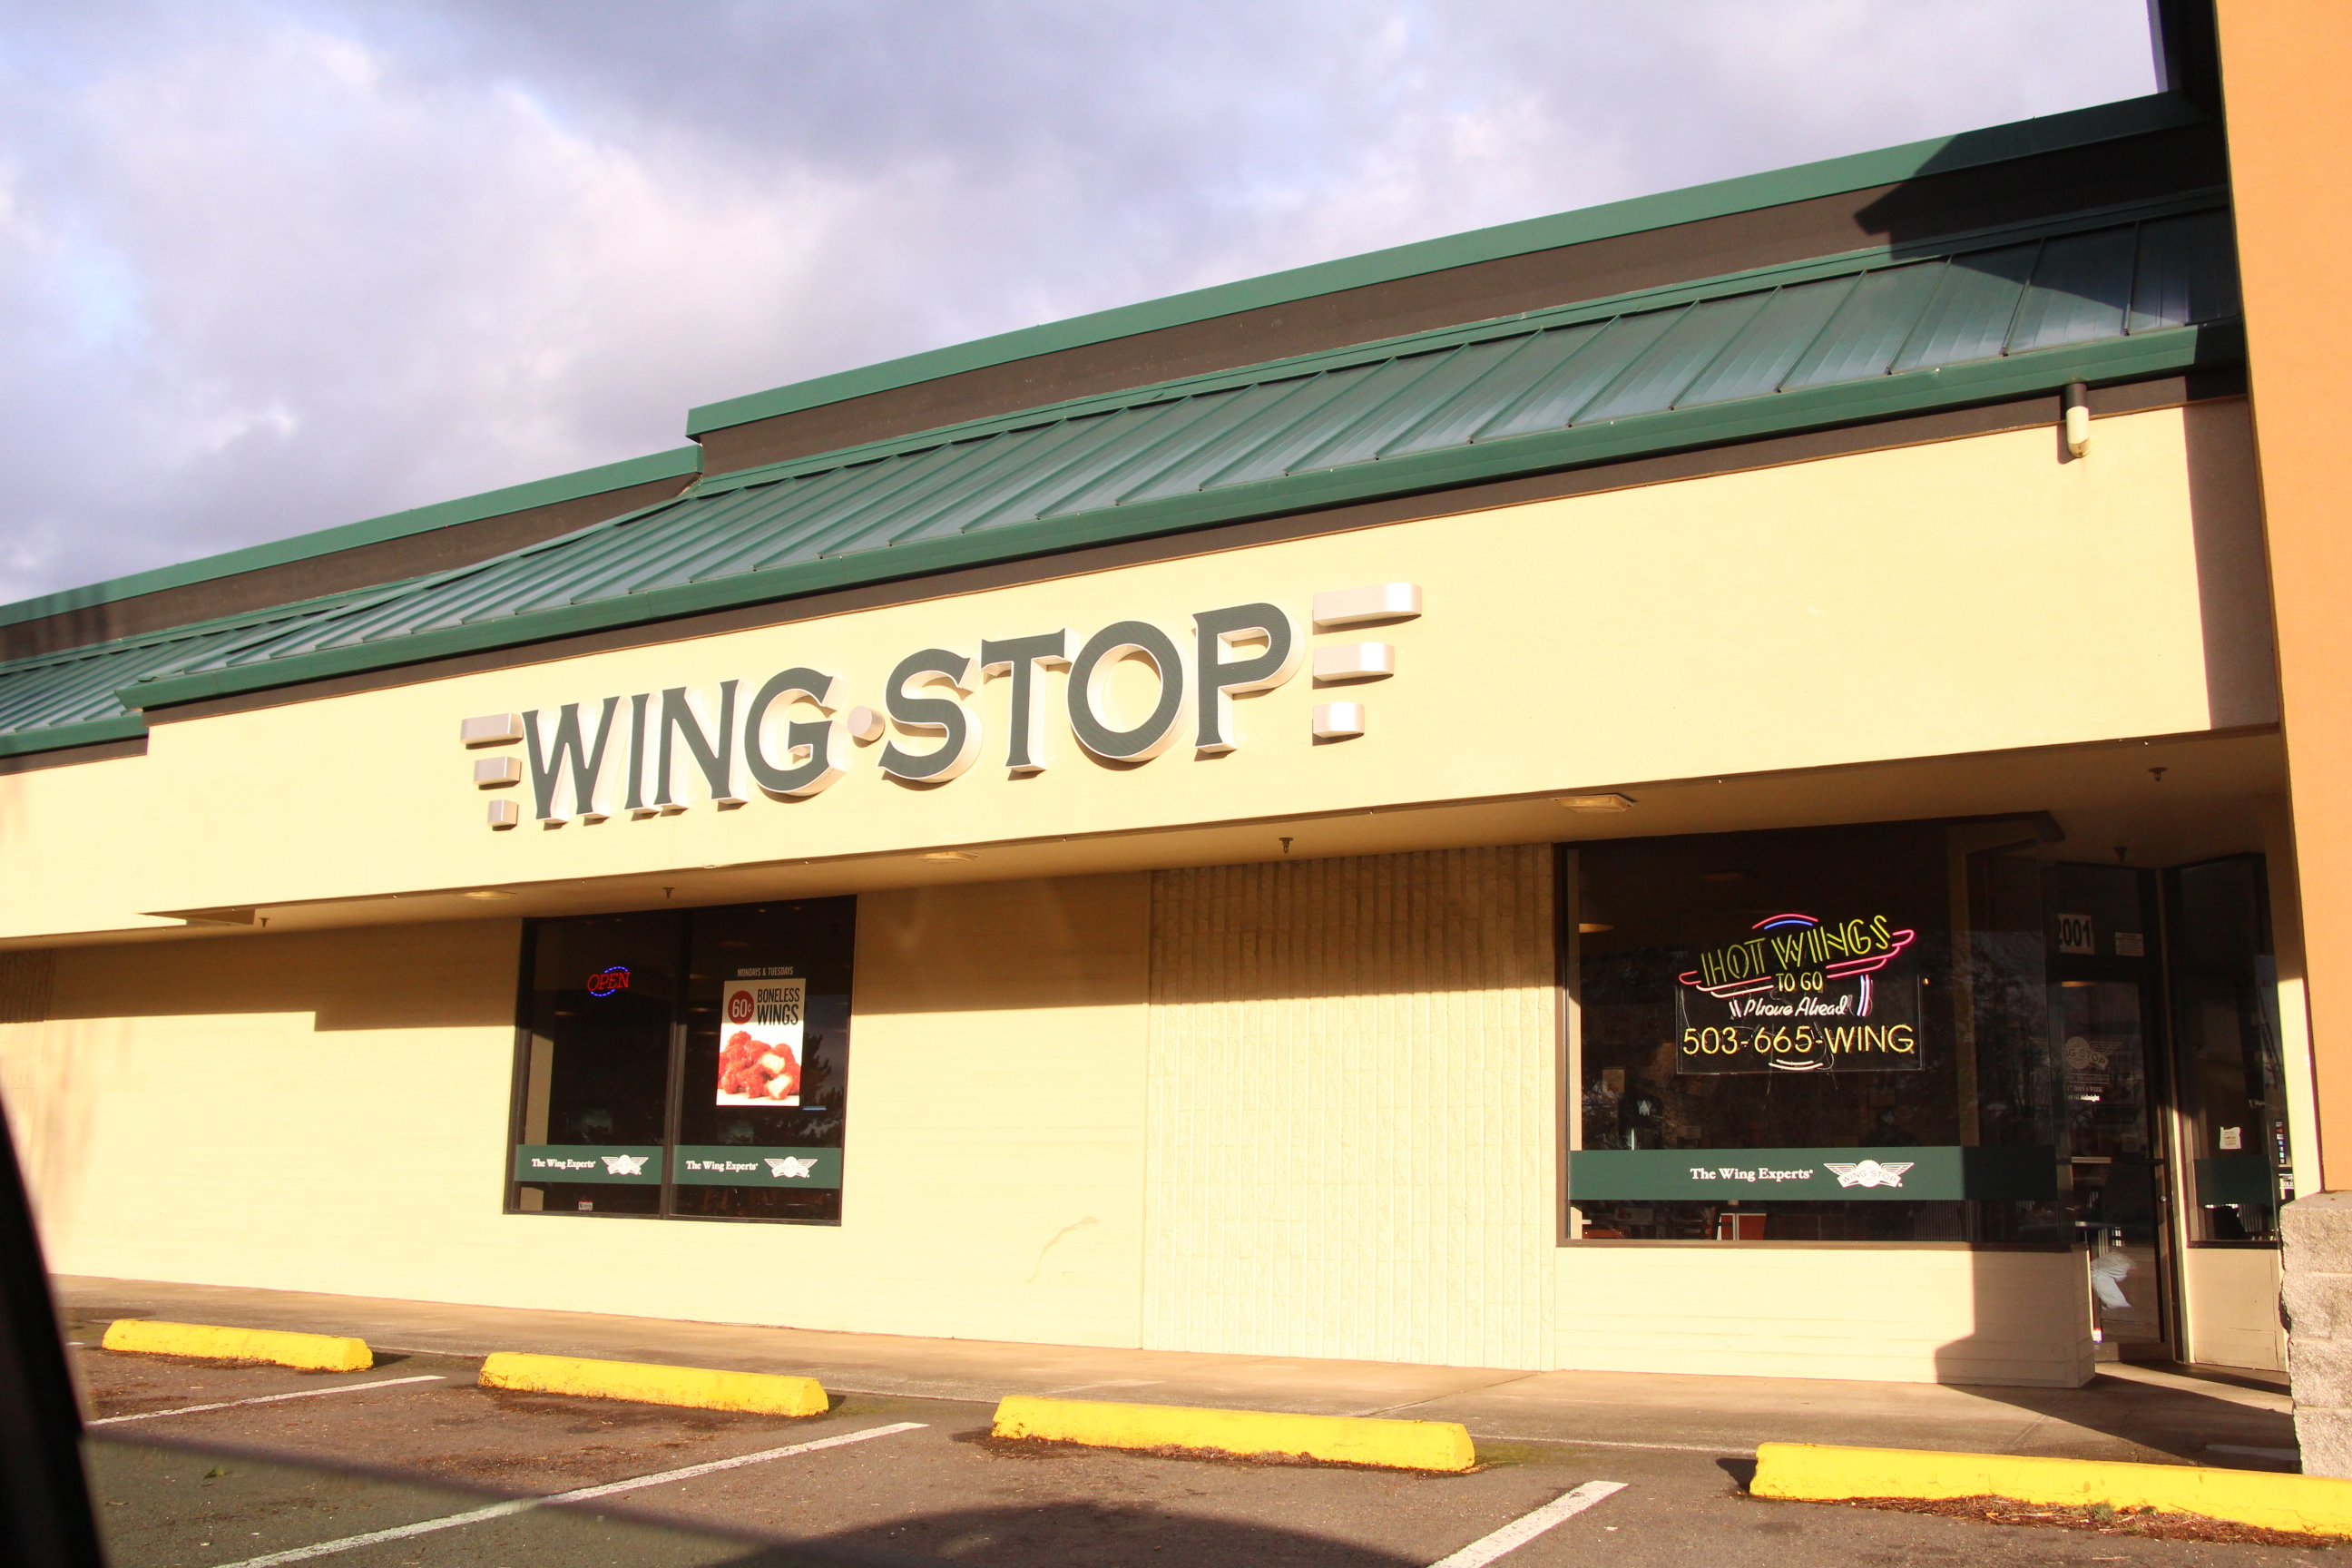 Wingstop has a variety of chicken and wings to choose from.  It's wonderful food will satisfy many.